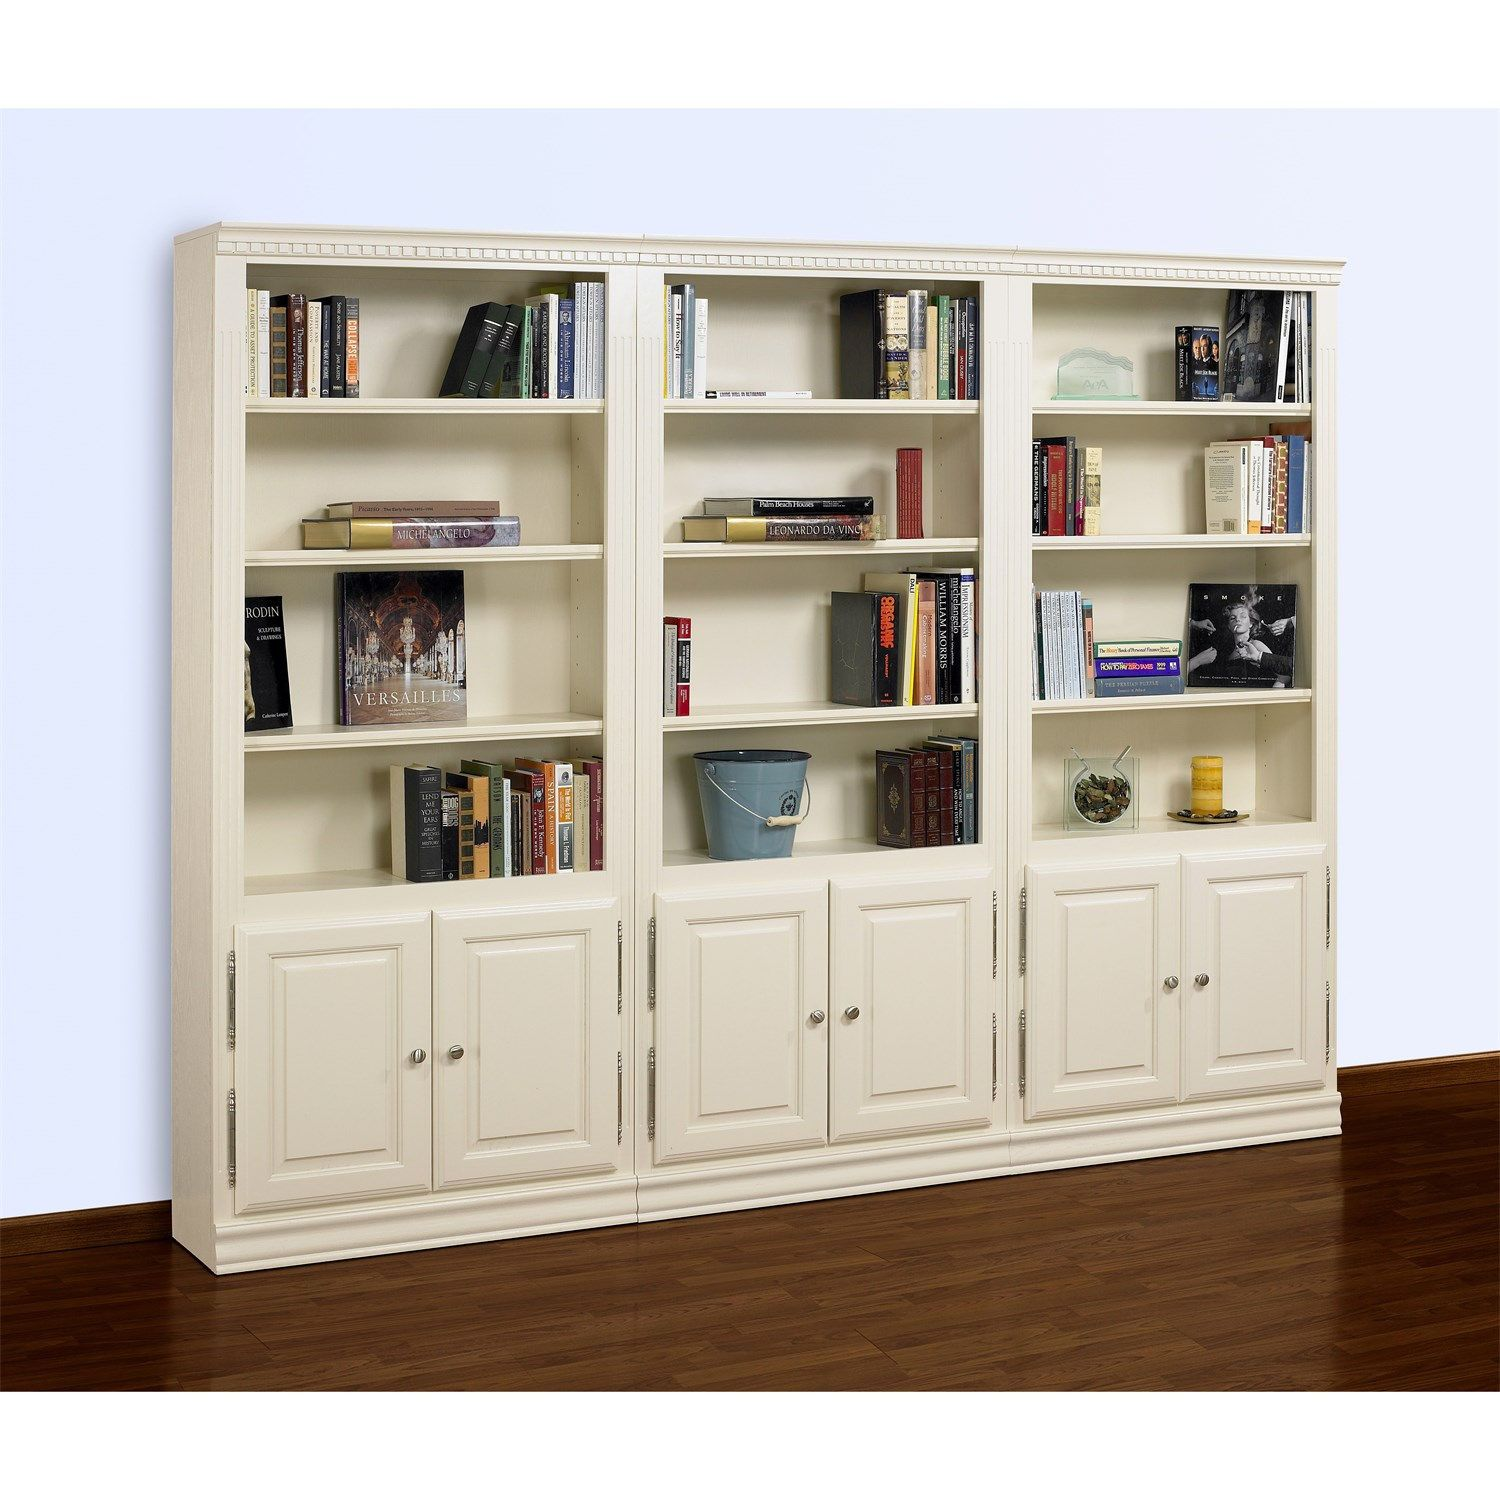 hayneedle bookcases product master heavy duty oak finleyhomeremmingtonheavydutybookcaseoak inch bookcase remmington cfm